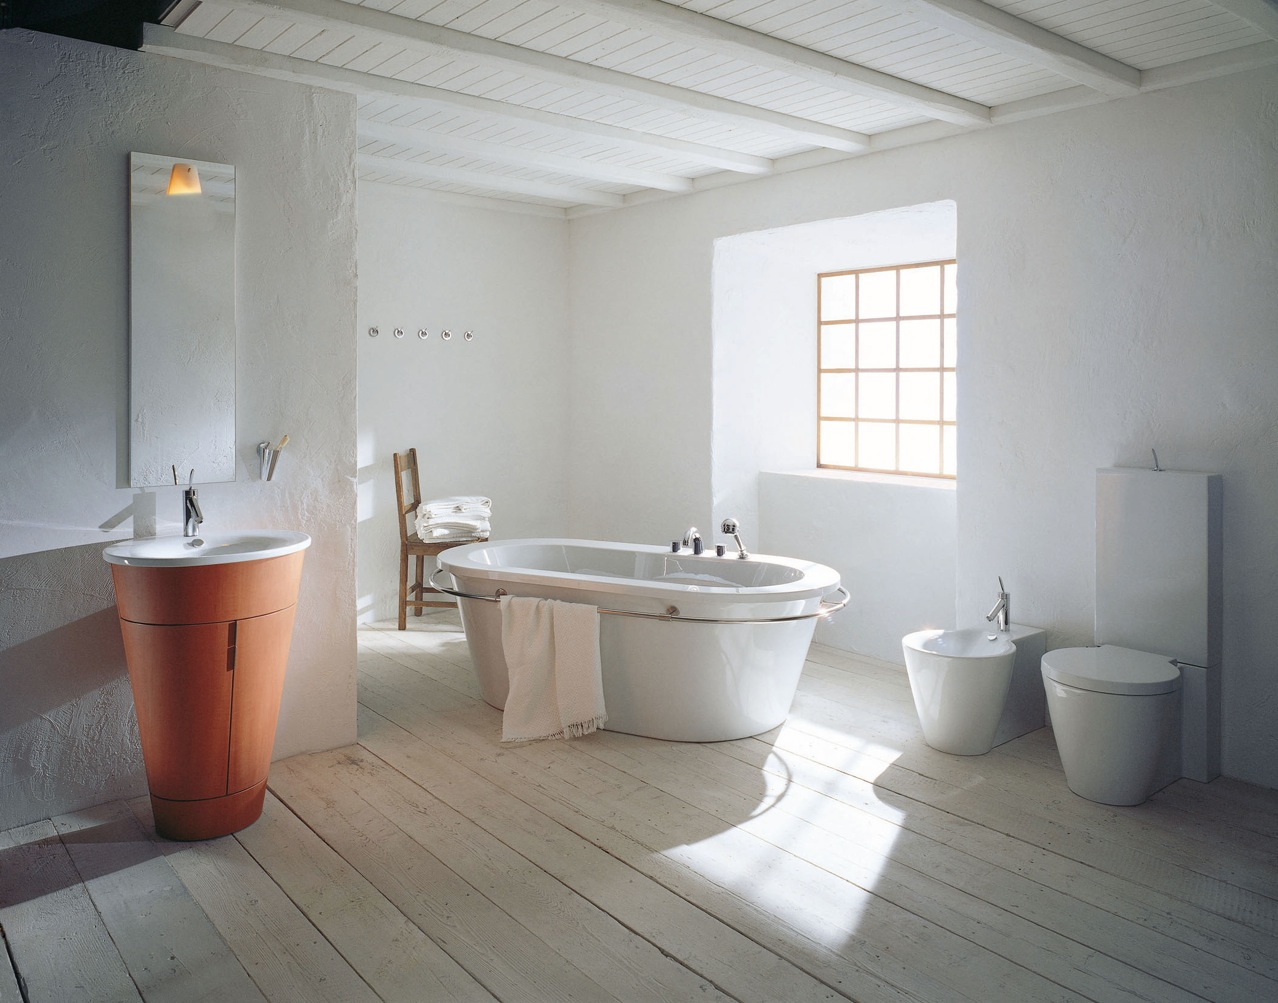 Philipe starck rustic modern bathroom decor for Contemporary bathrooms